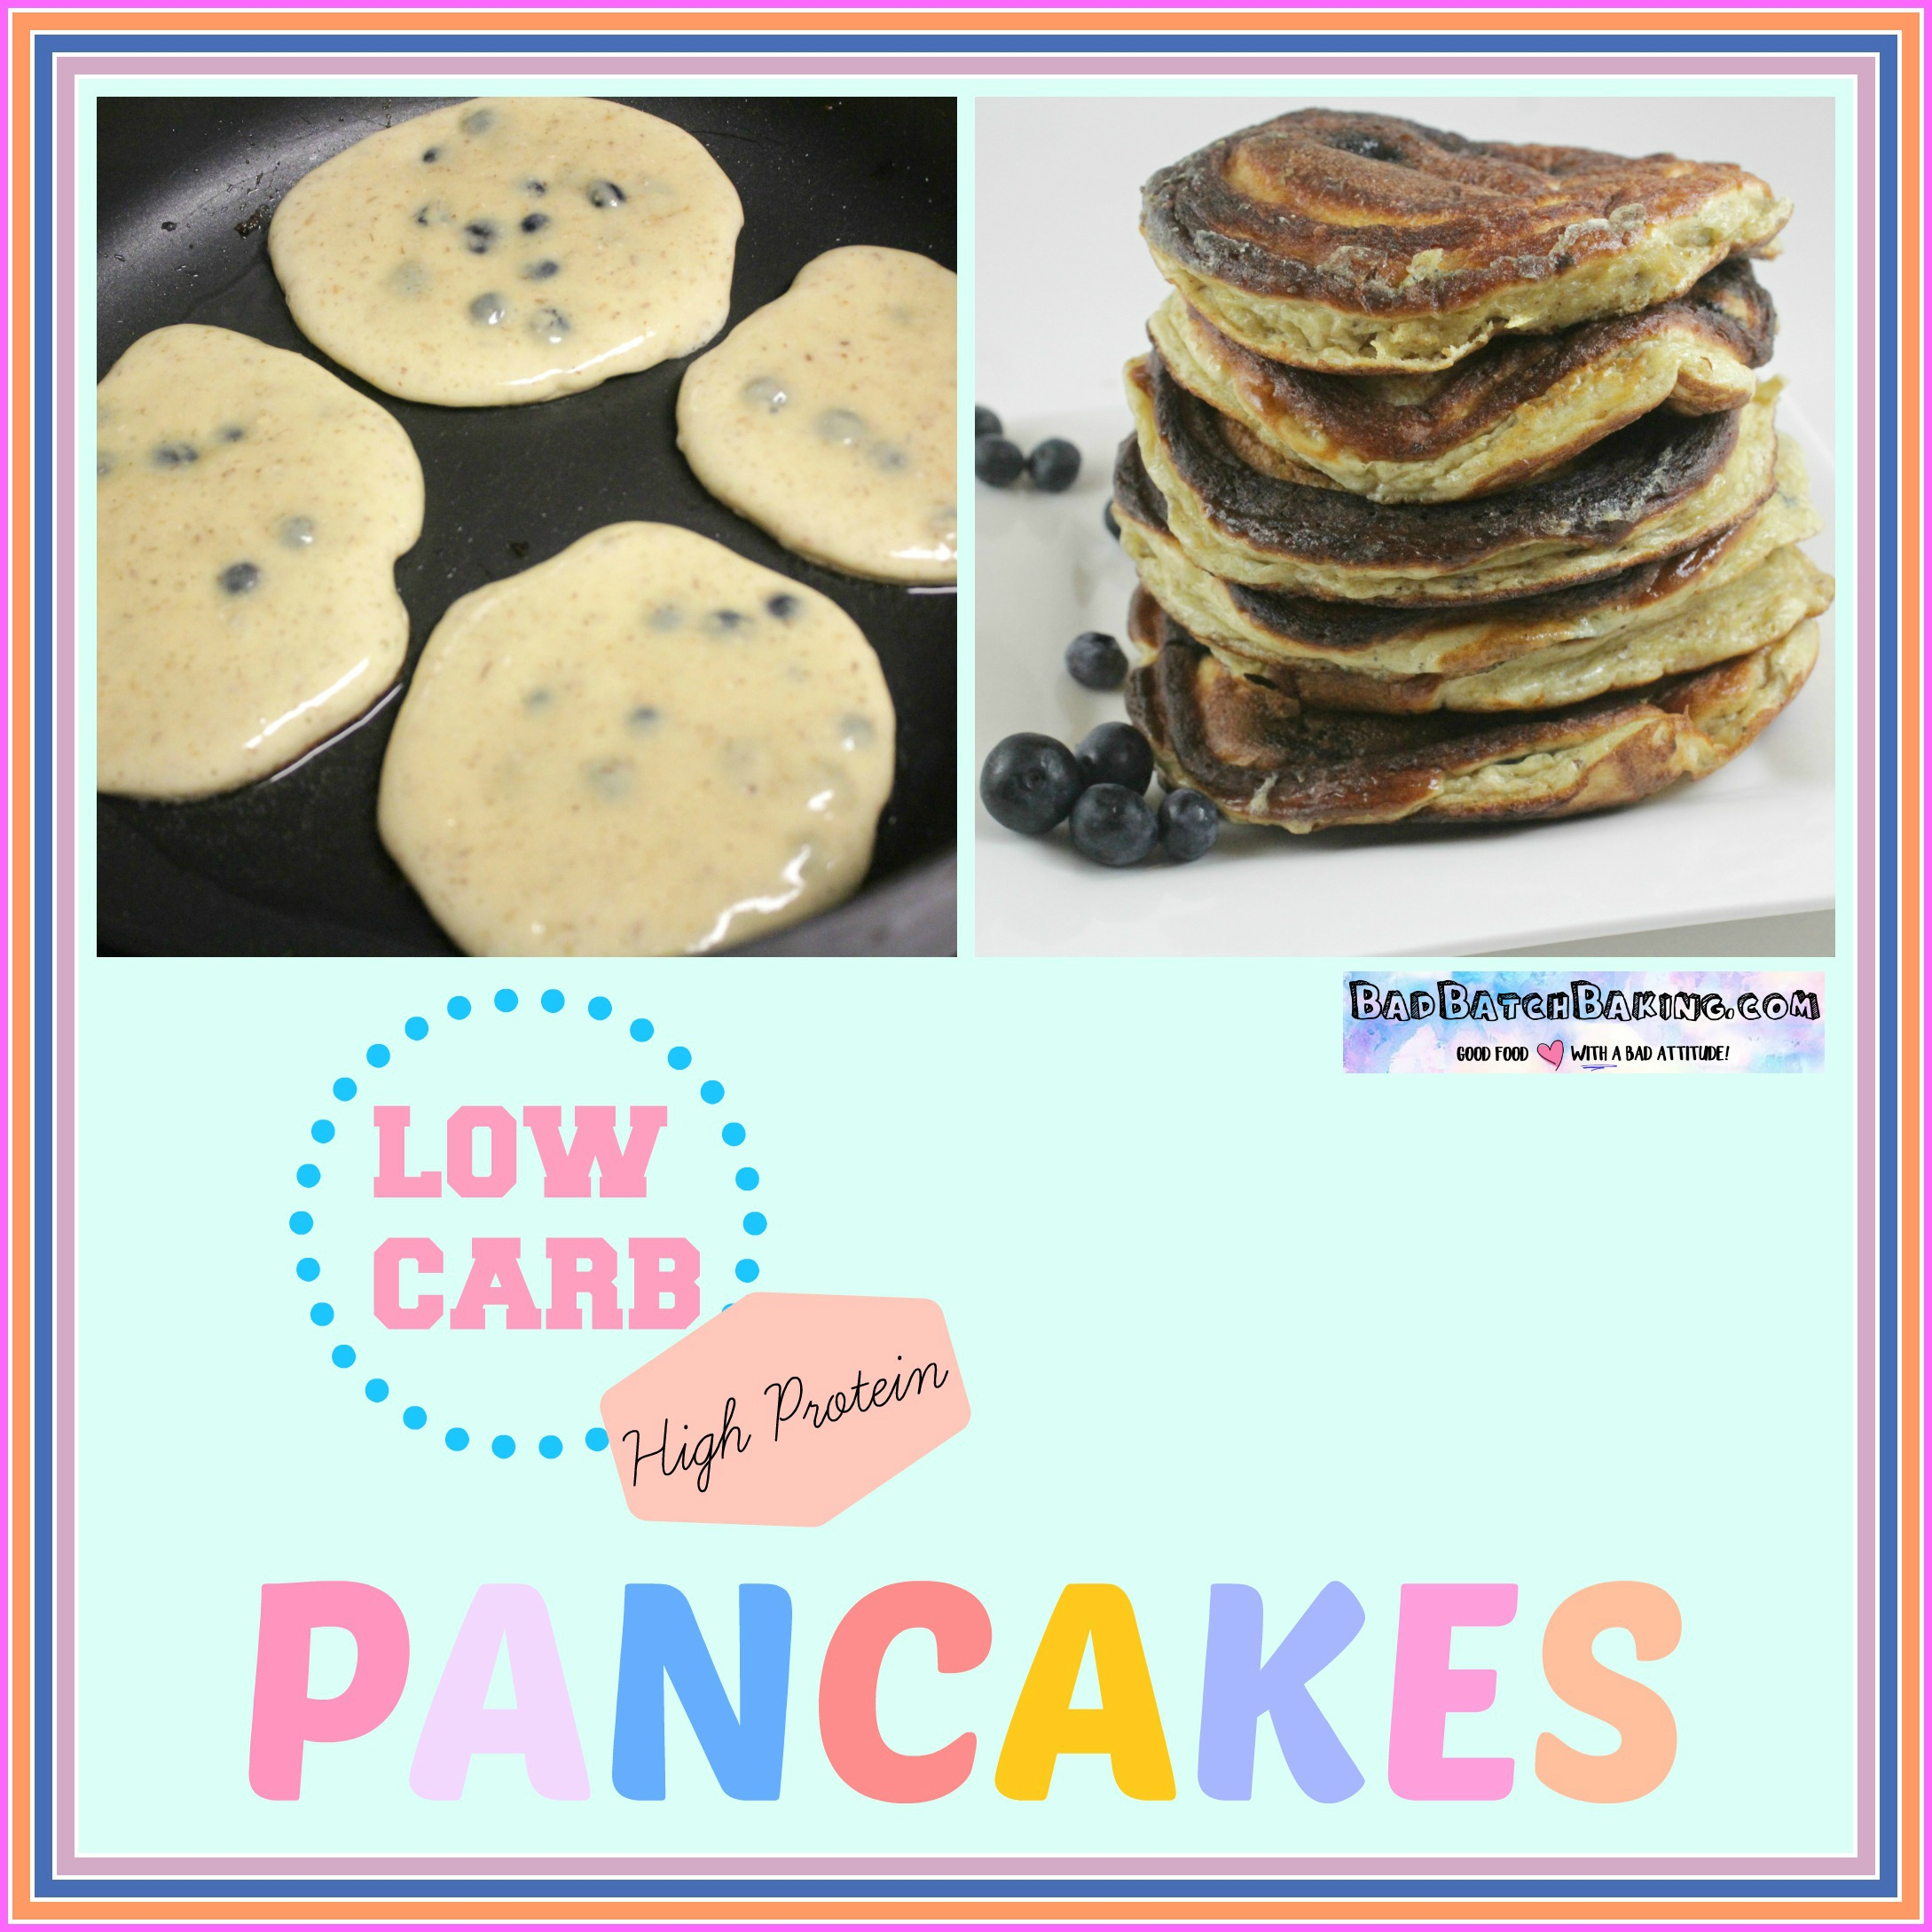 Fluffy High Protein Low Carb Pancakes with blueberries